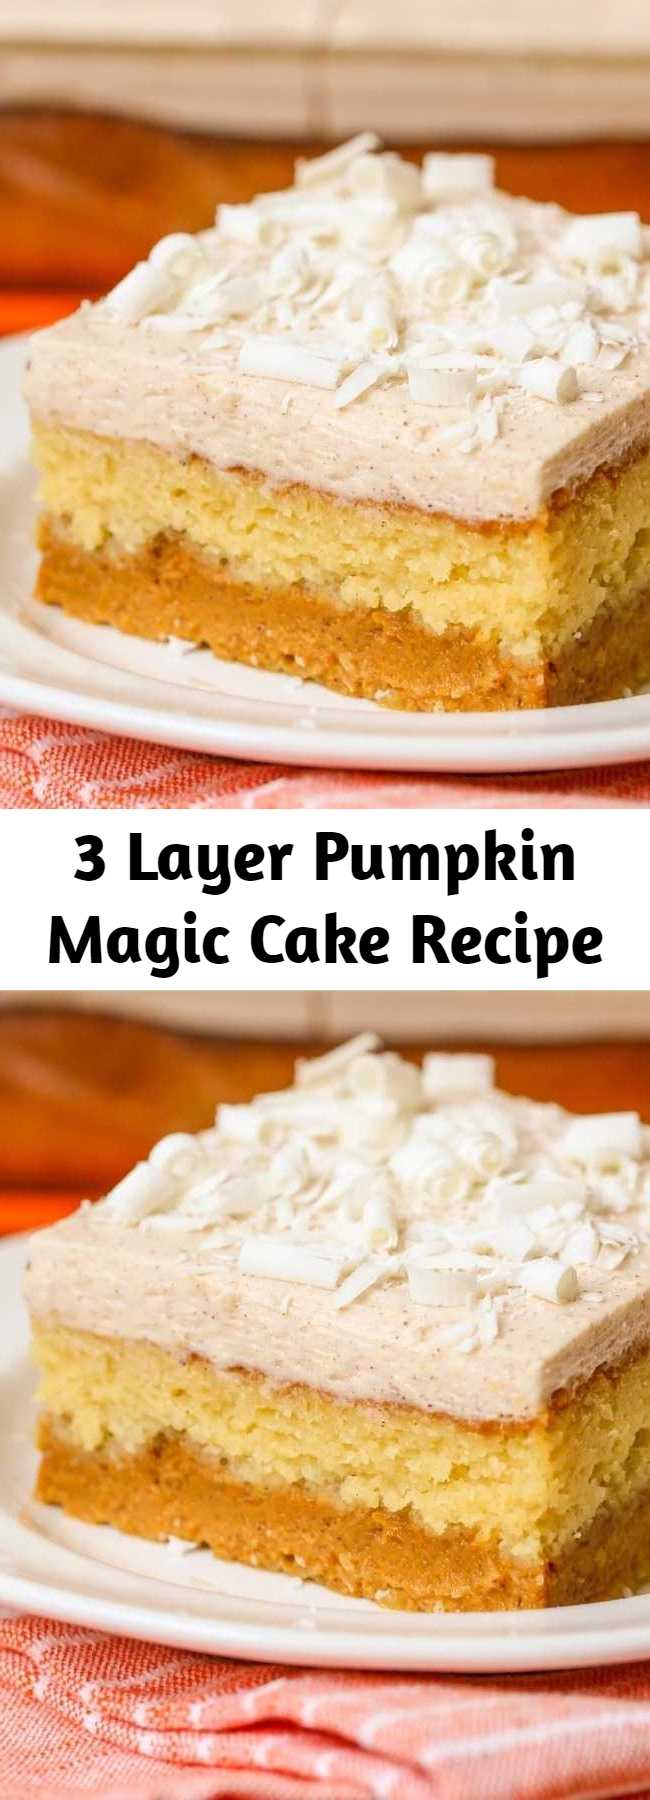 3 Layer Pumpkin Magic Cake Recipe - See For Yourself Why This 3 Layer Magic Pumpkin Cake Is So Magical! It's Made Up Of A Creamy Pumpkin Puree Layer, A Layer Of Yellow Cake, And Lastly A White Chocolate Pumpkin Spice Frosting Topped With White Chocolate Shavings!!